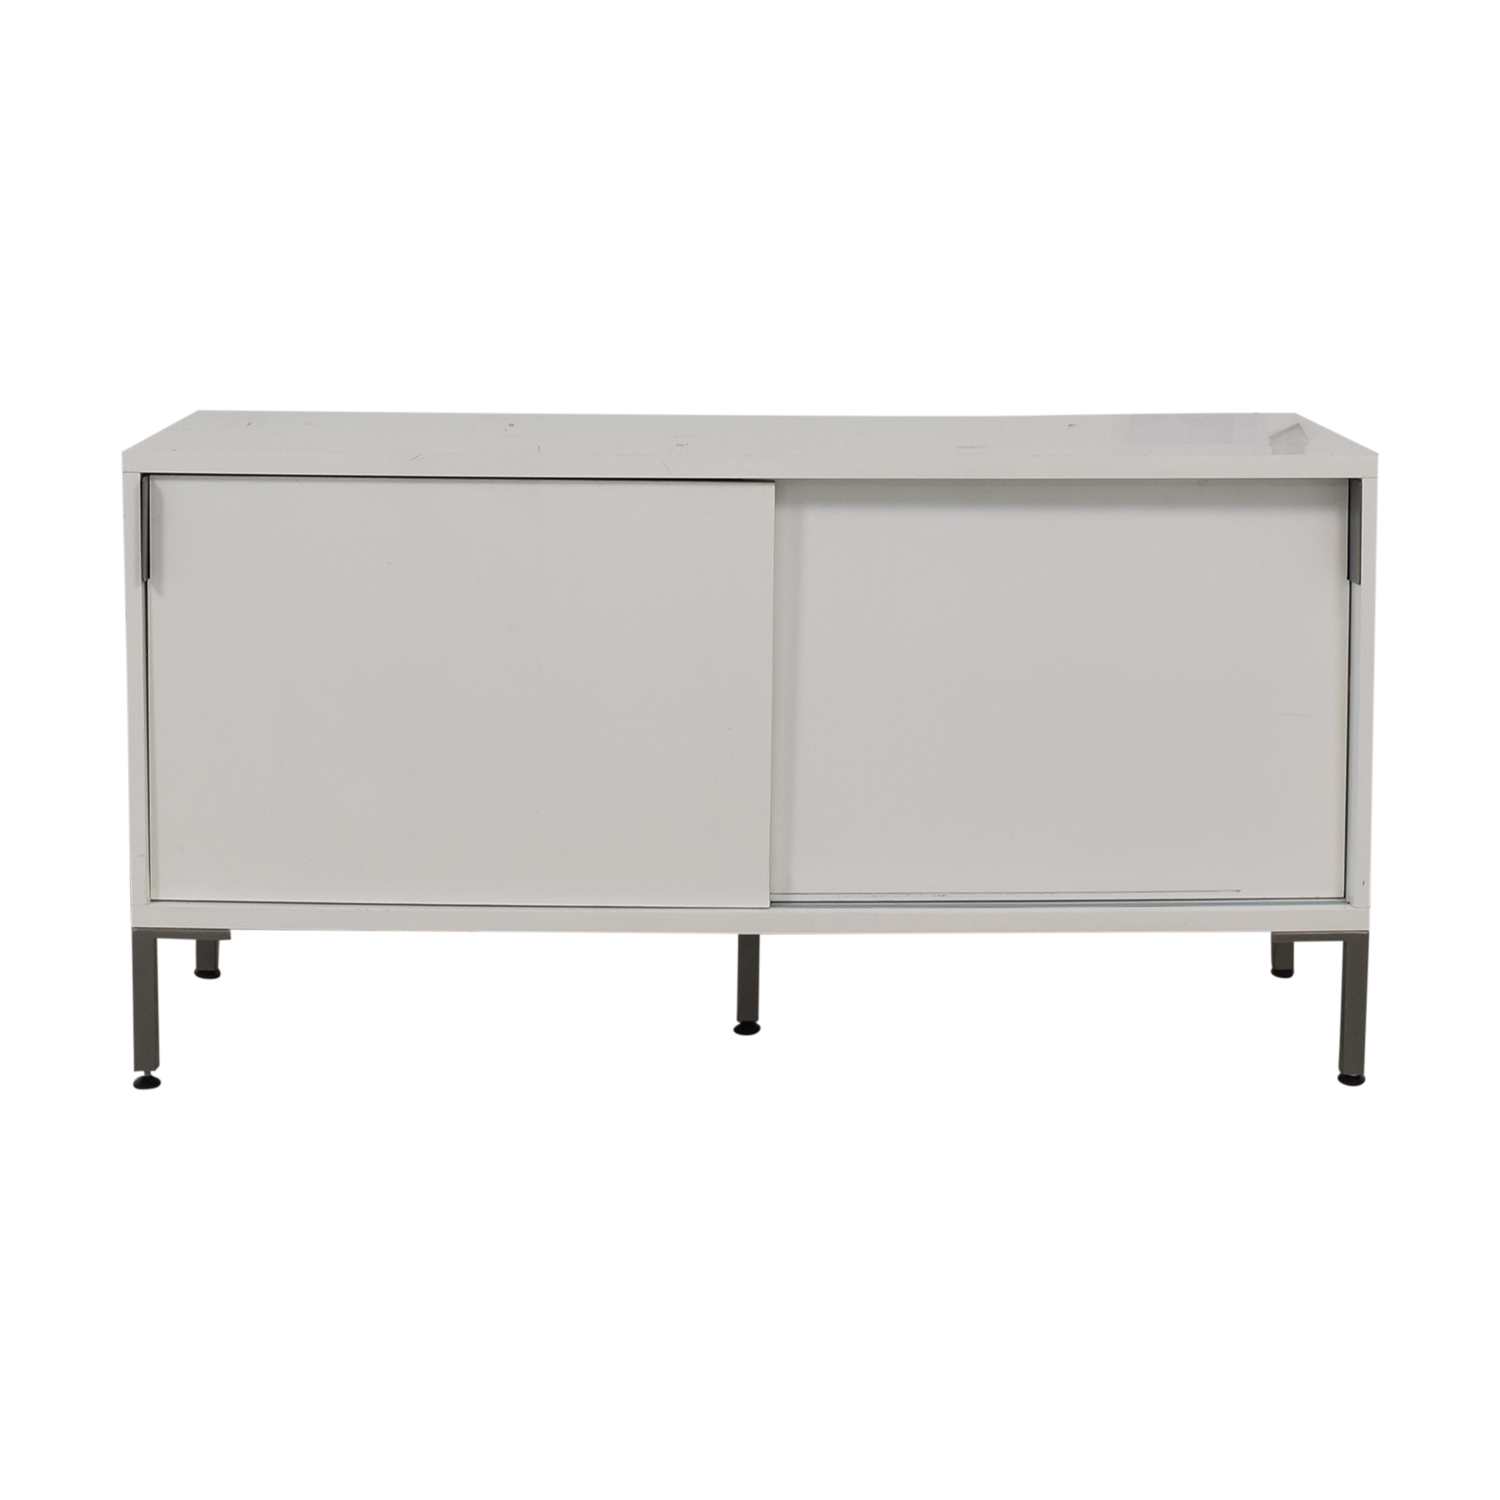 shop CB2 White Media Console CB2